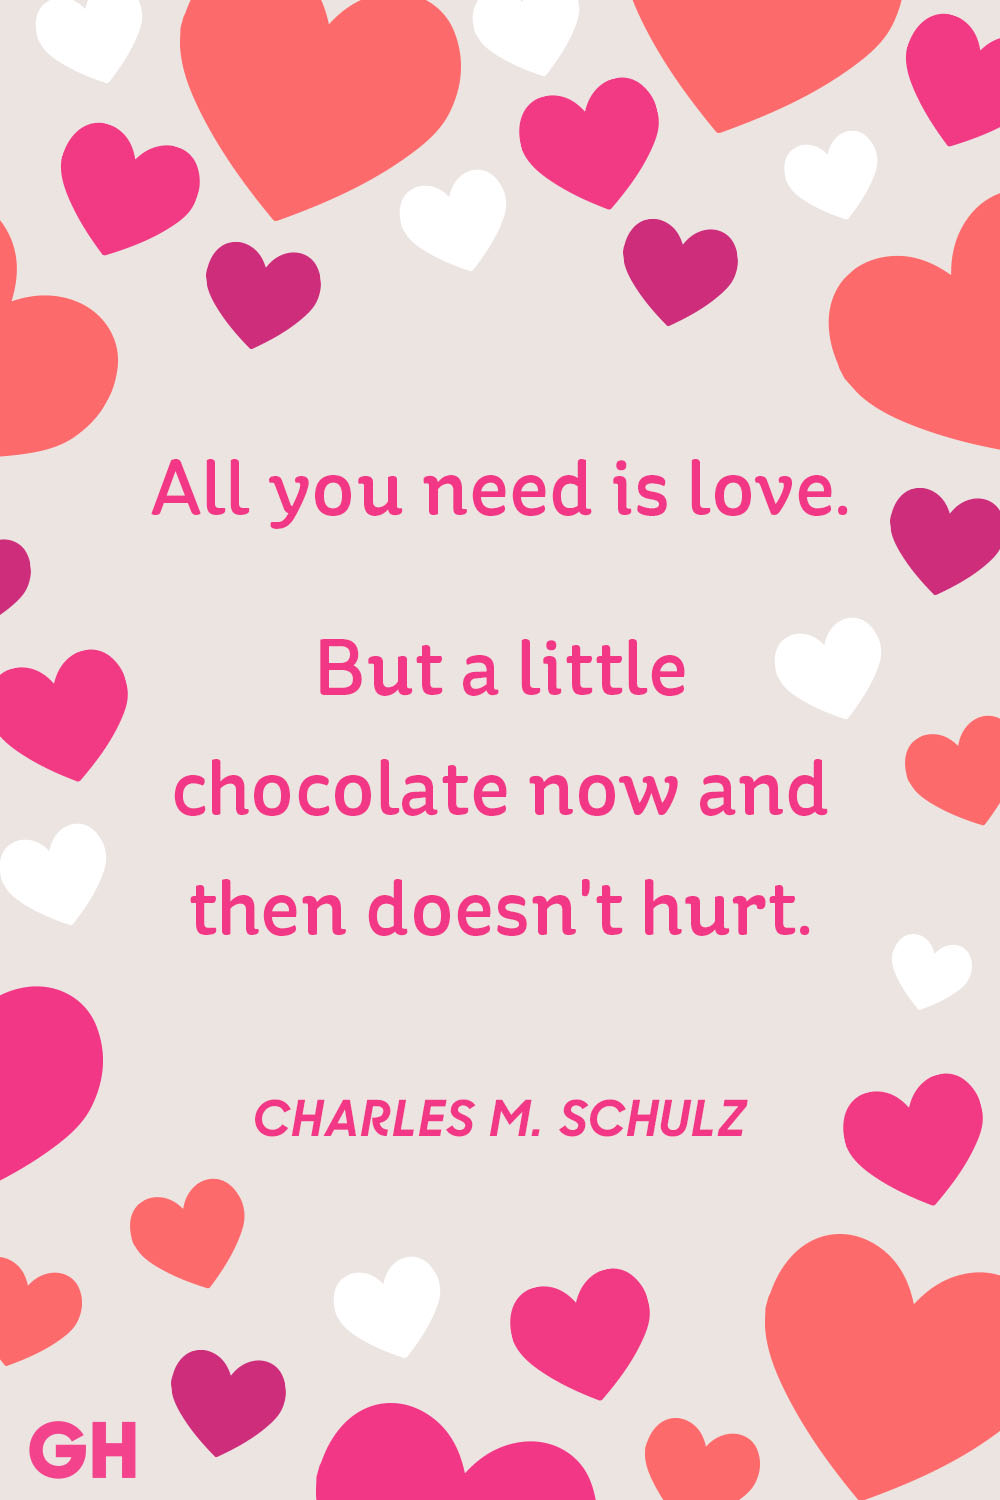 Valentines Day Love Quotes 30 Cute Valentine's Day Quotes  Best Romantic Quotes About